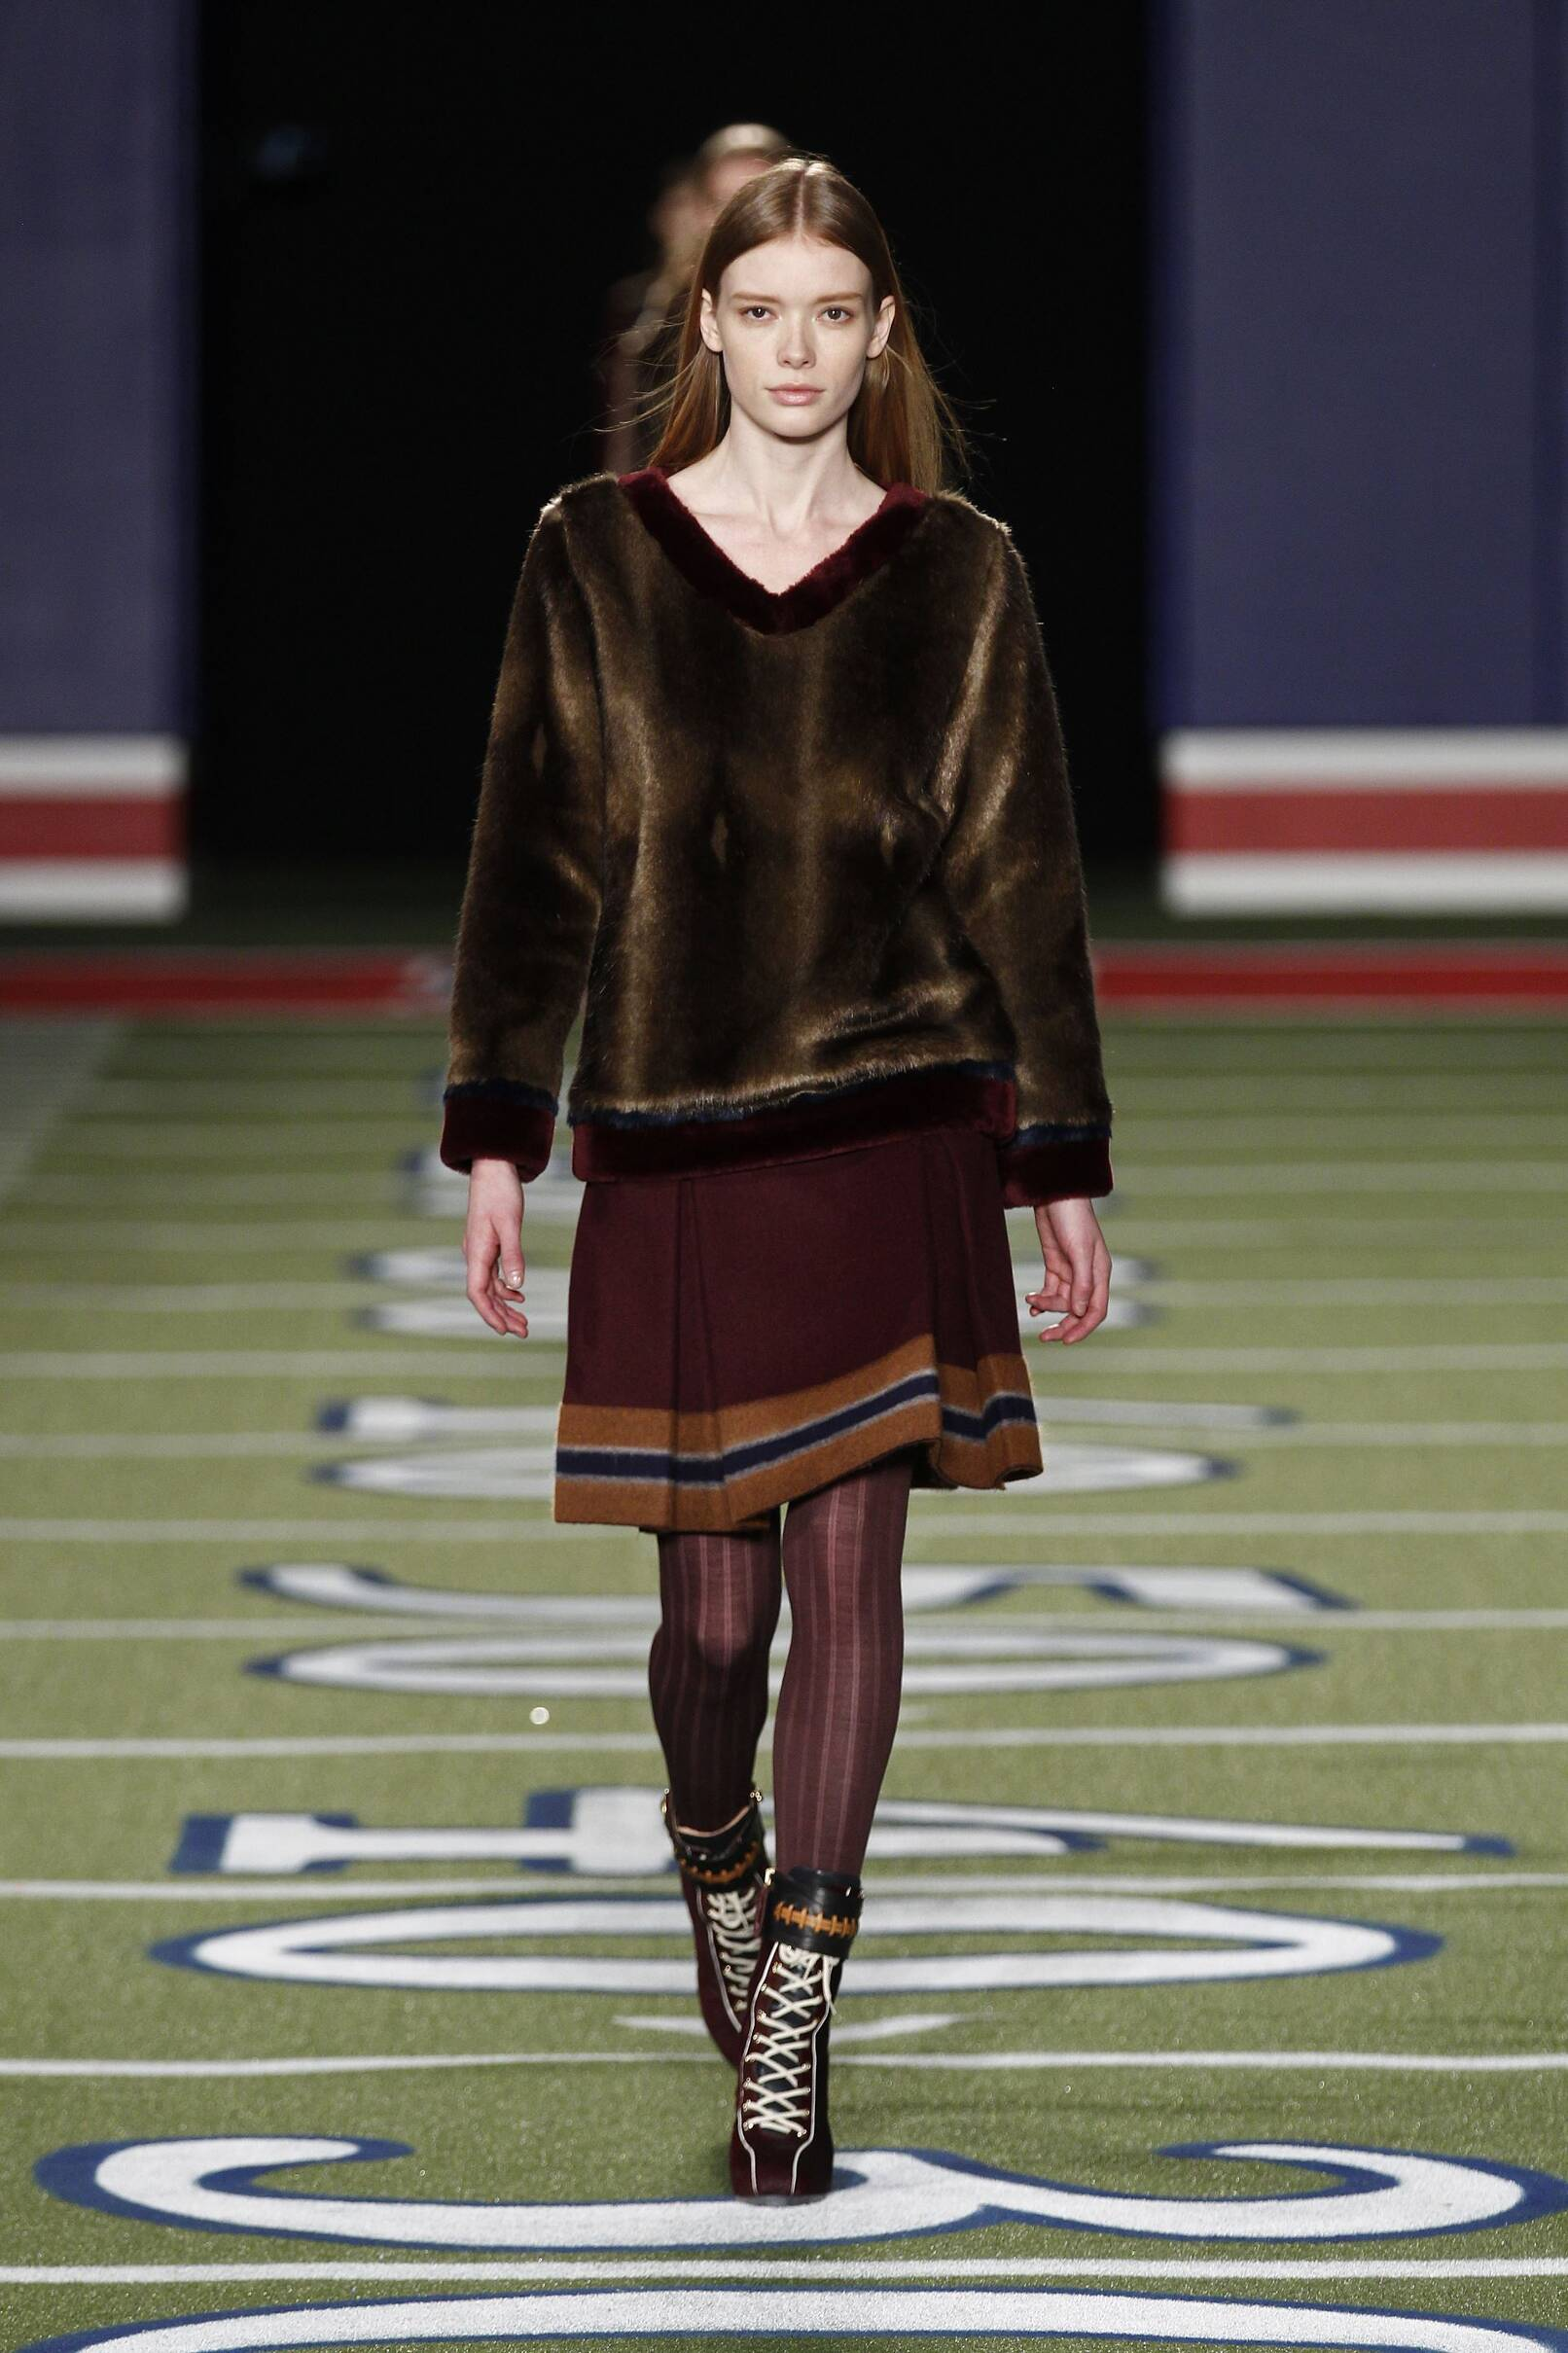 TOMMY HILFIGER FALL WINTER 2015-16 WOMEN'S COLLECTION